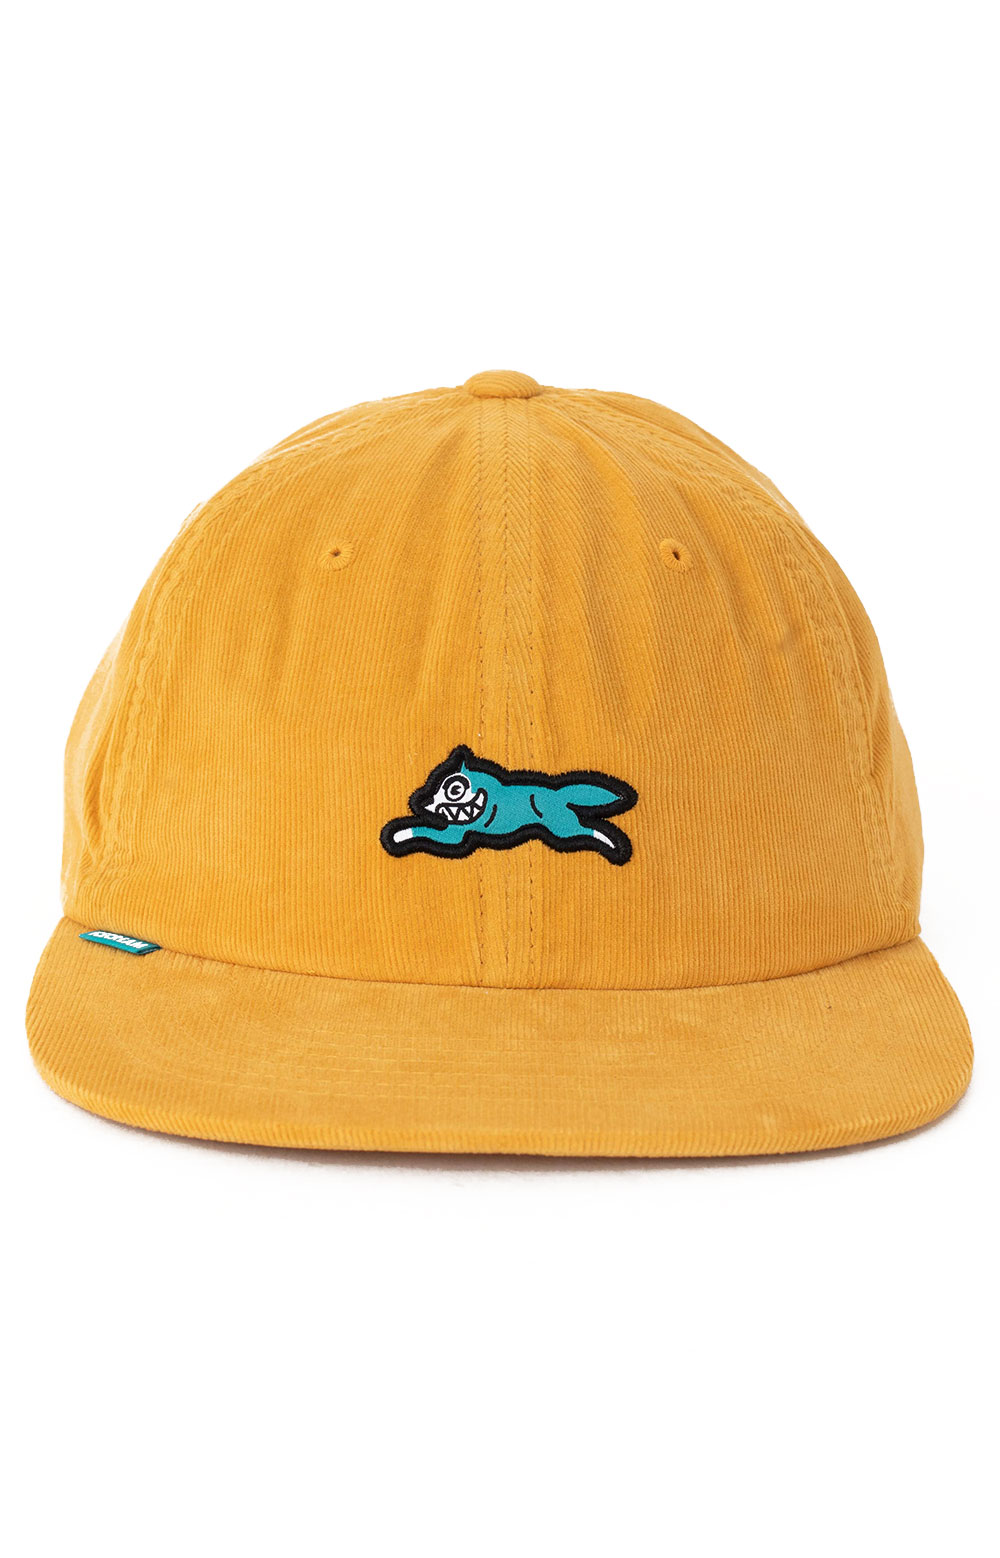 Dawg Polo Cap - Radiant Yellow 2